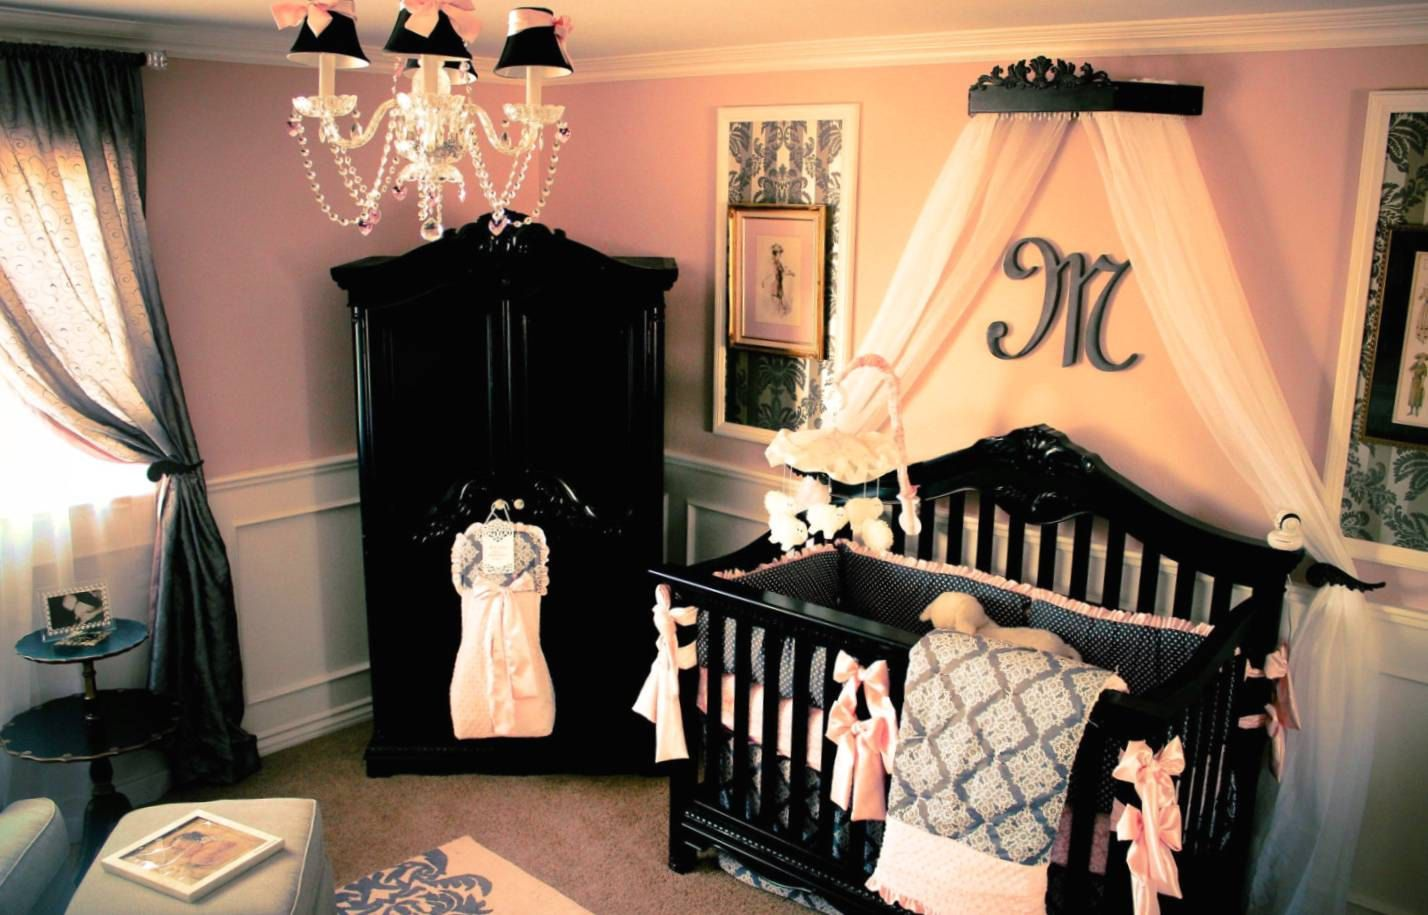 Bed Crown Featured Hgtv 132 Dollars Paris Decor 132 00 Via Etsy Country Baby Rooms Baby Girl Room Nursery